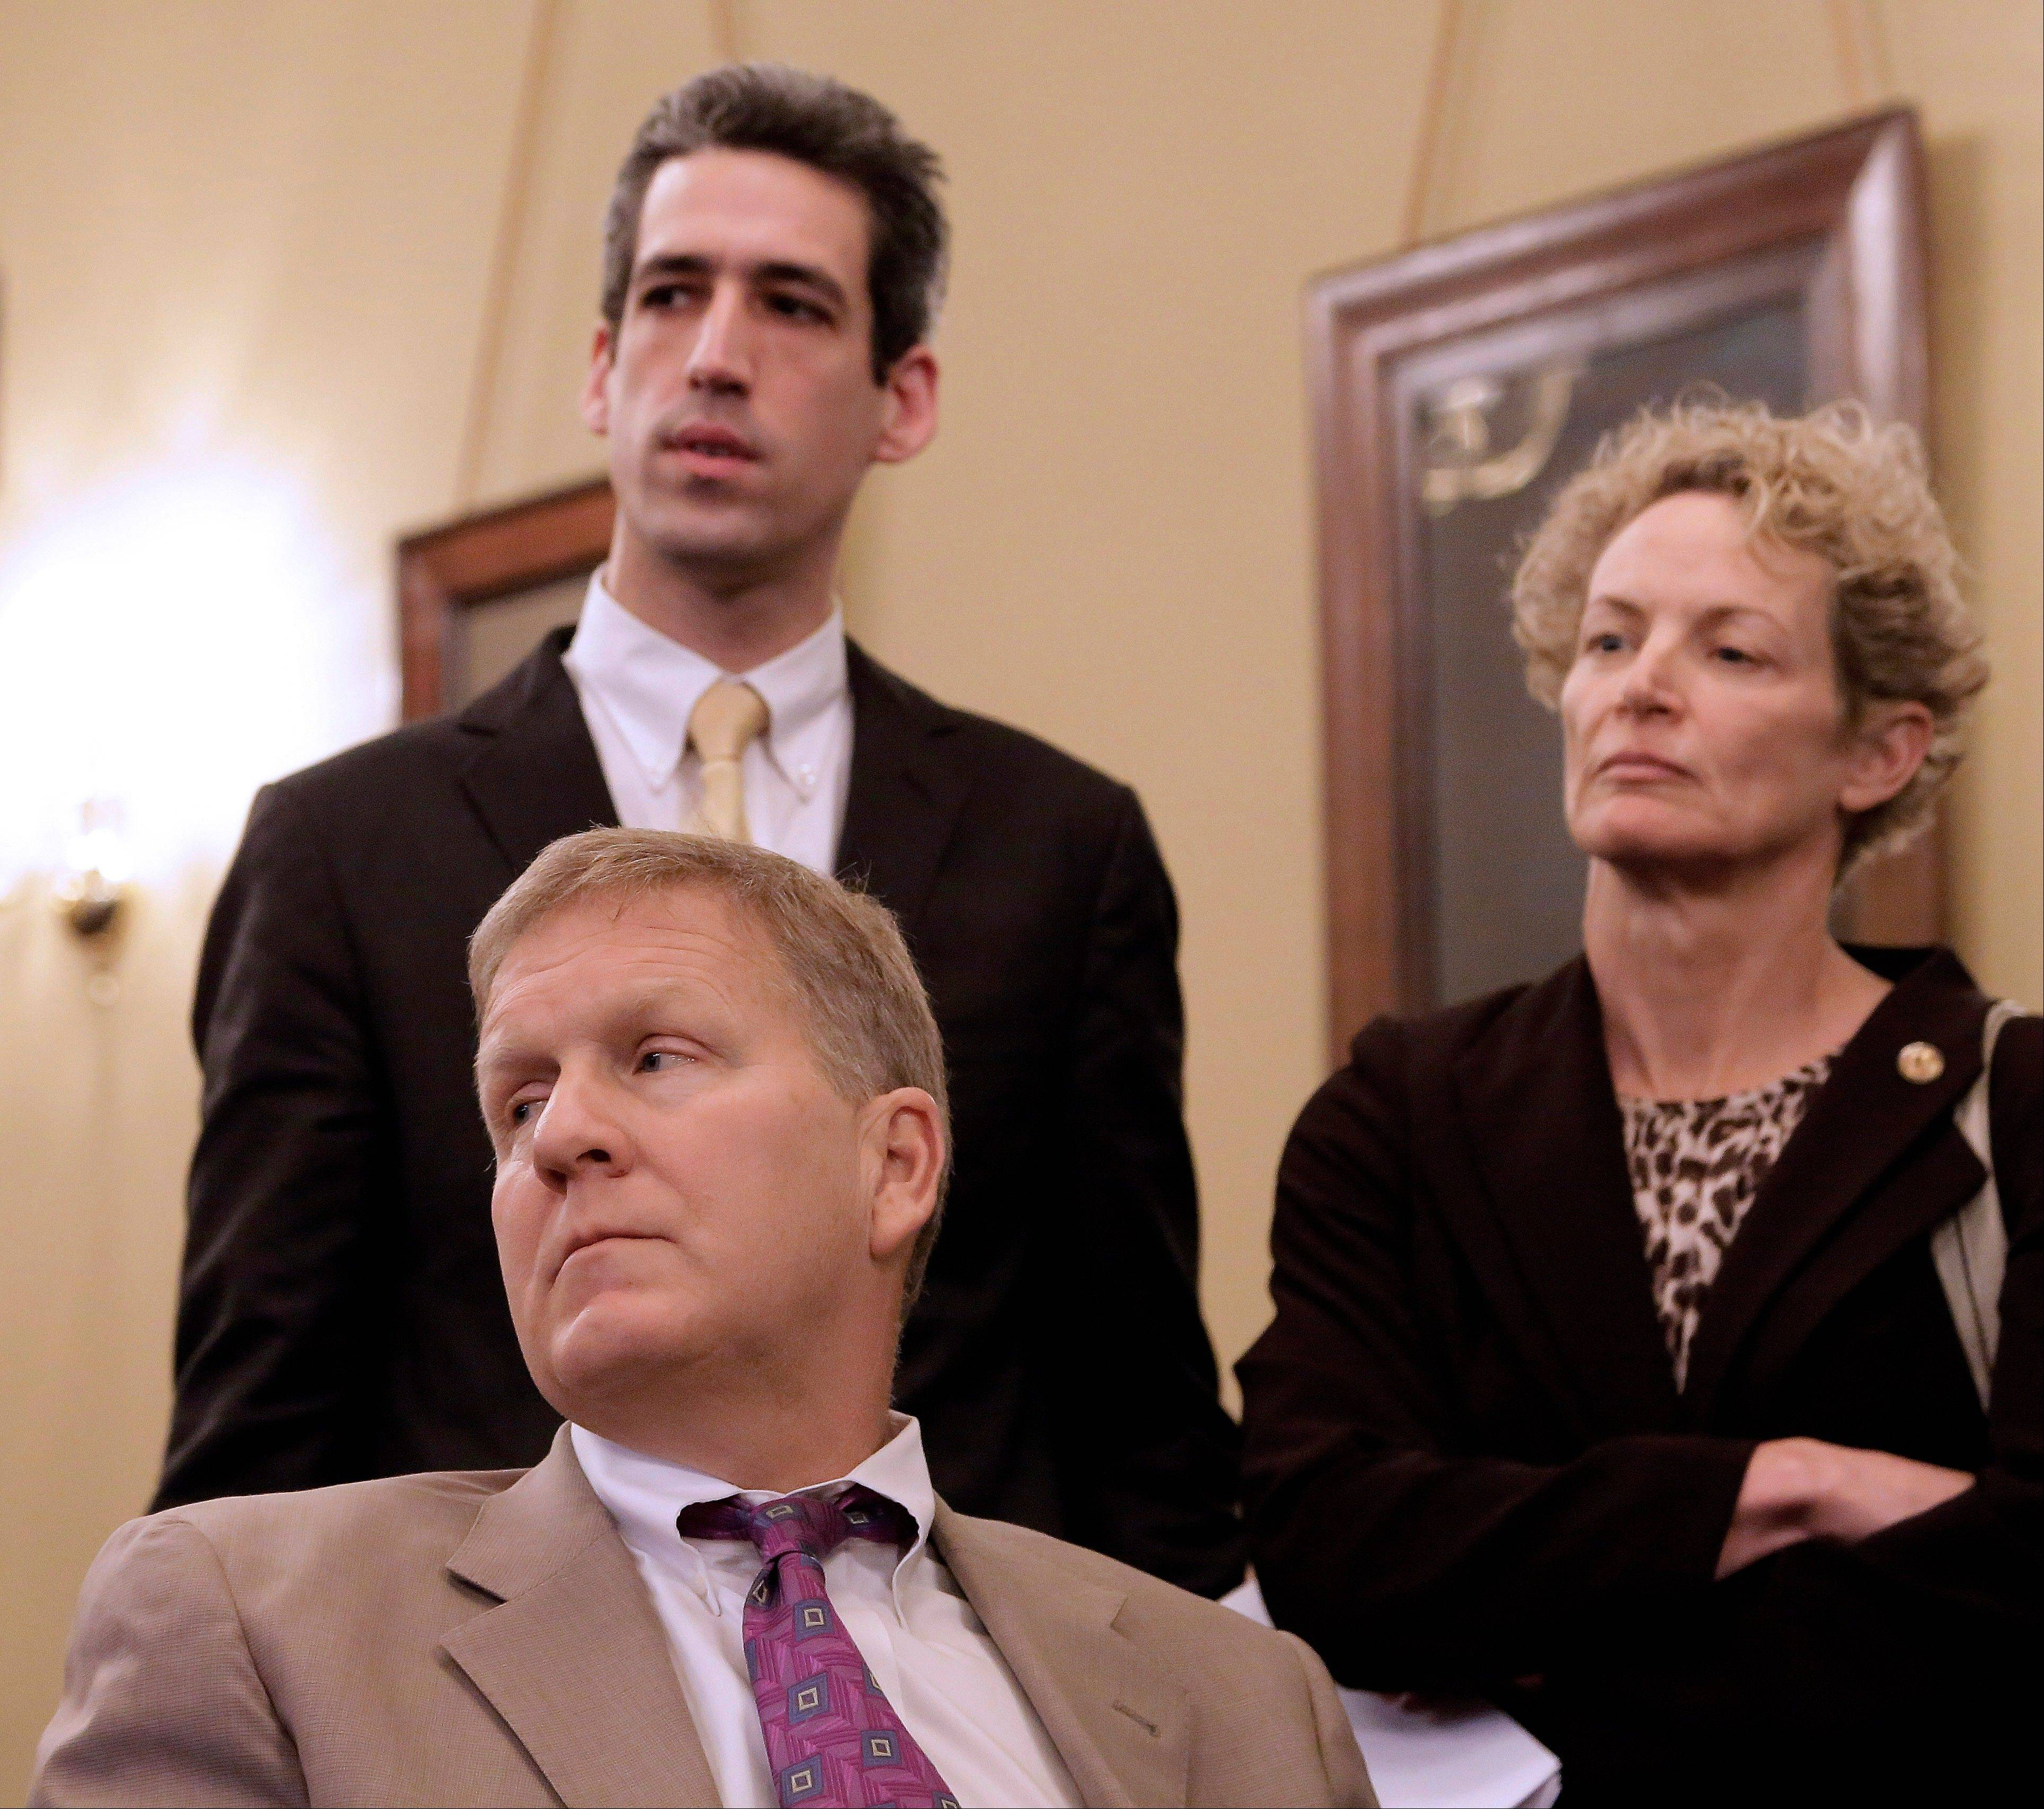 State Sen. Daniel Biss, top left, House Republican Leader Tom Cross, bottom, and state Rep. Elaine Nekritz proposed a new plan to cut the state's pension costs.